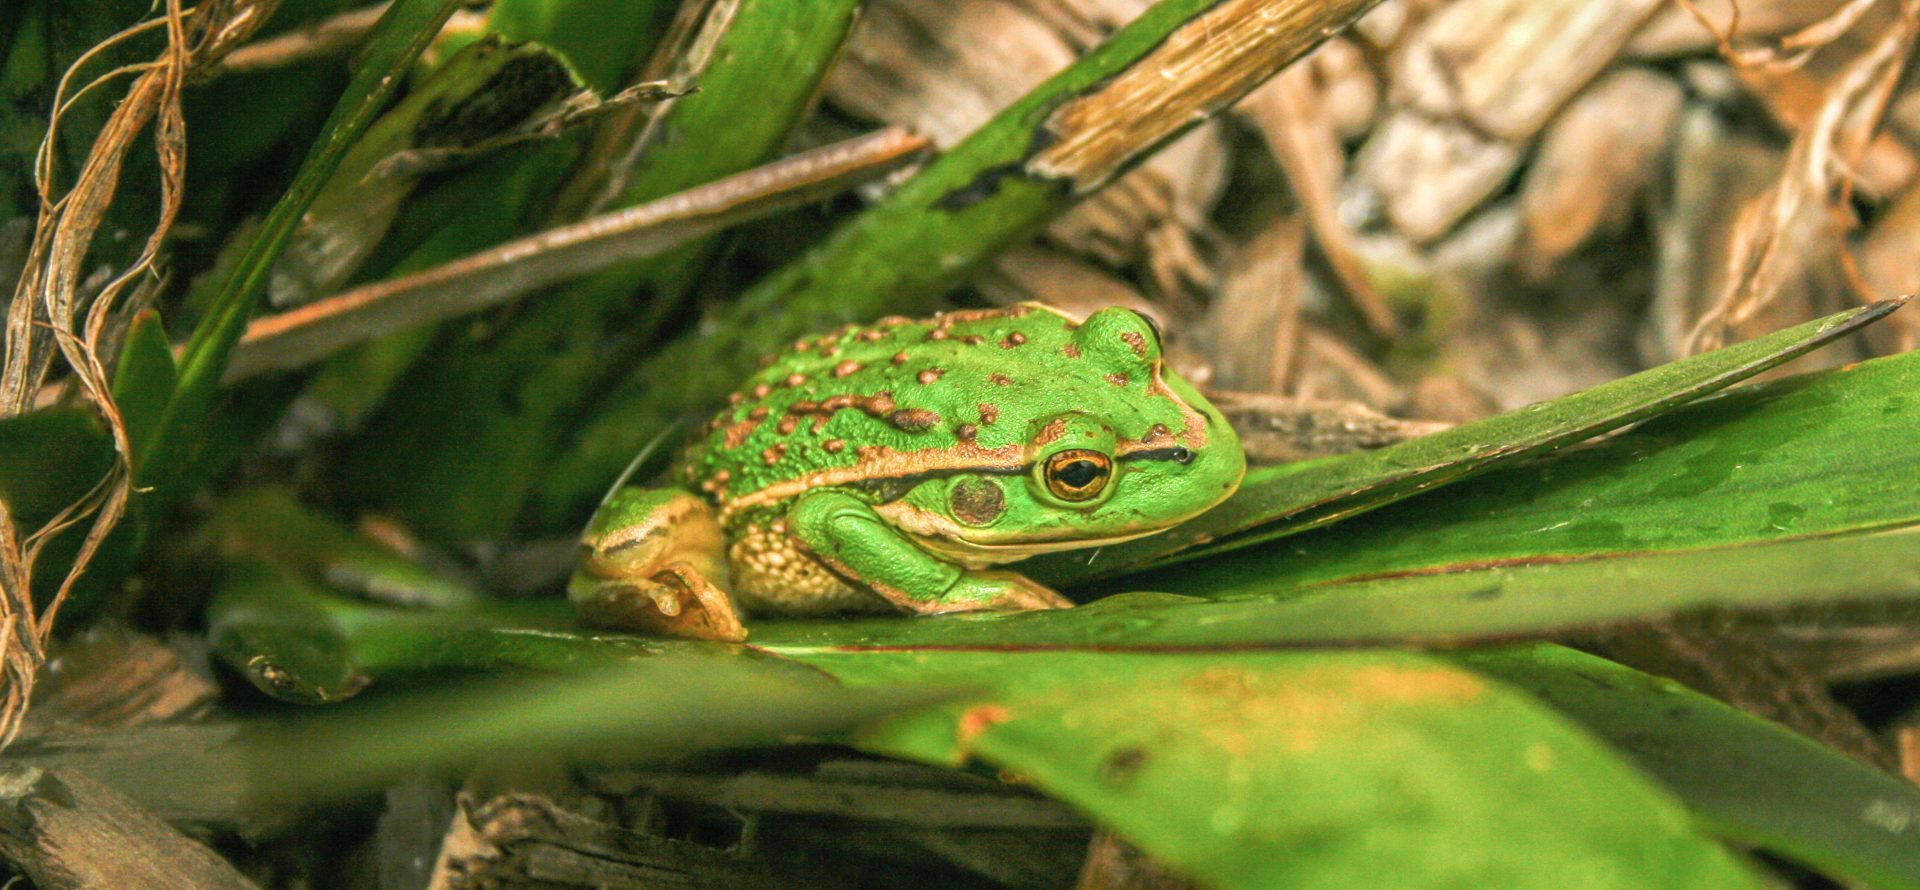 A Growling grass Frog is an endangered species due to urbanisation and landscape chnage